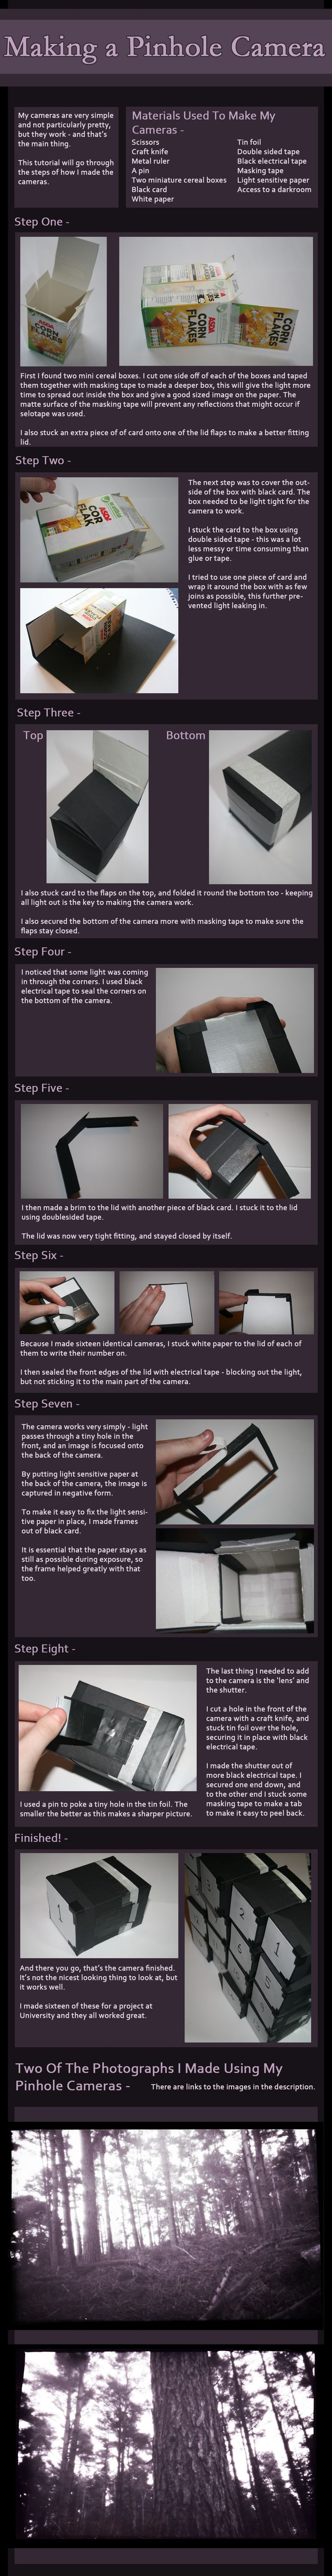 How To Make A Pinhole Camera by seasonaldragon1.deviantart.com on @deviantART